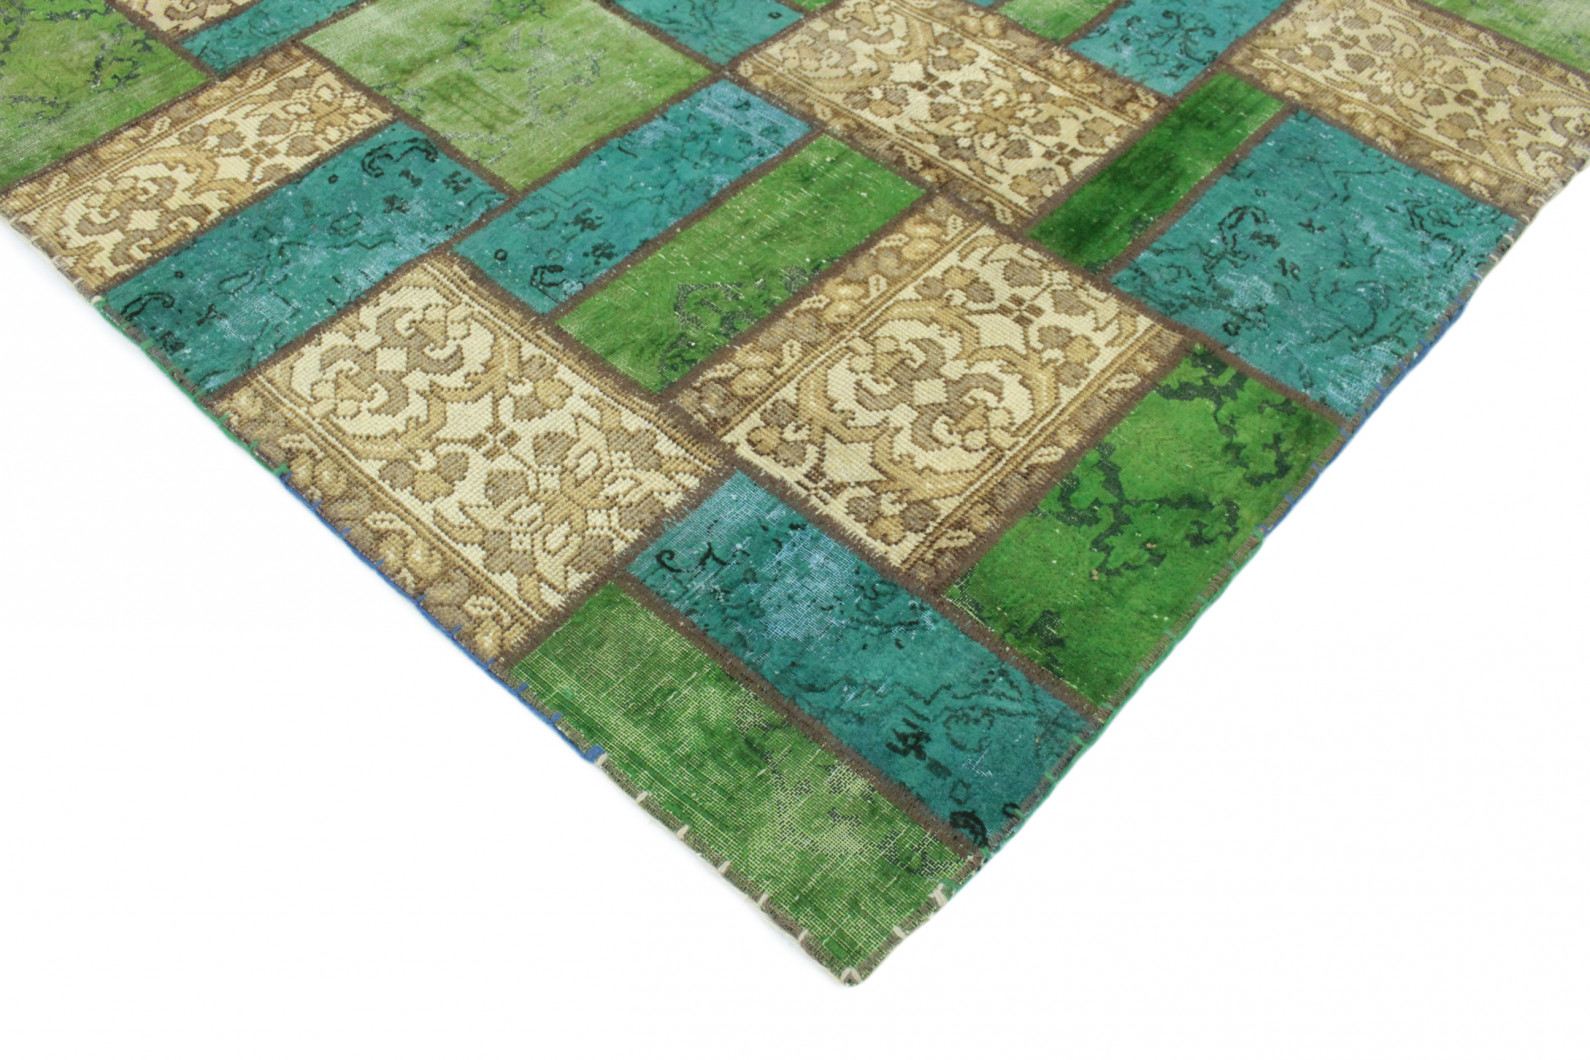 Patchwork Rug Beige Turquoise Green In 300x200 1001